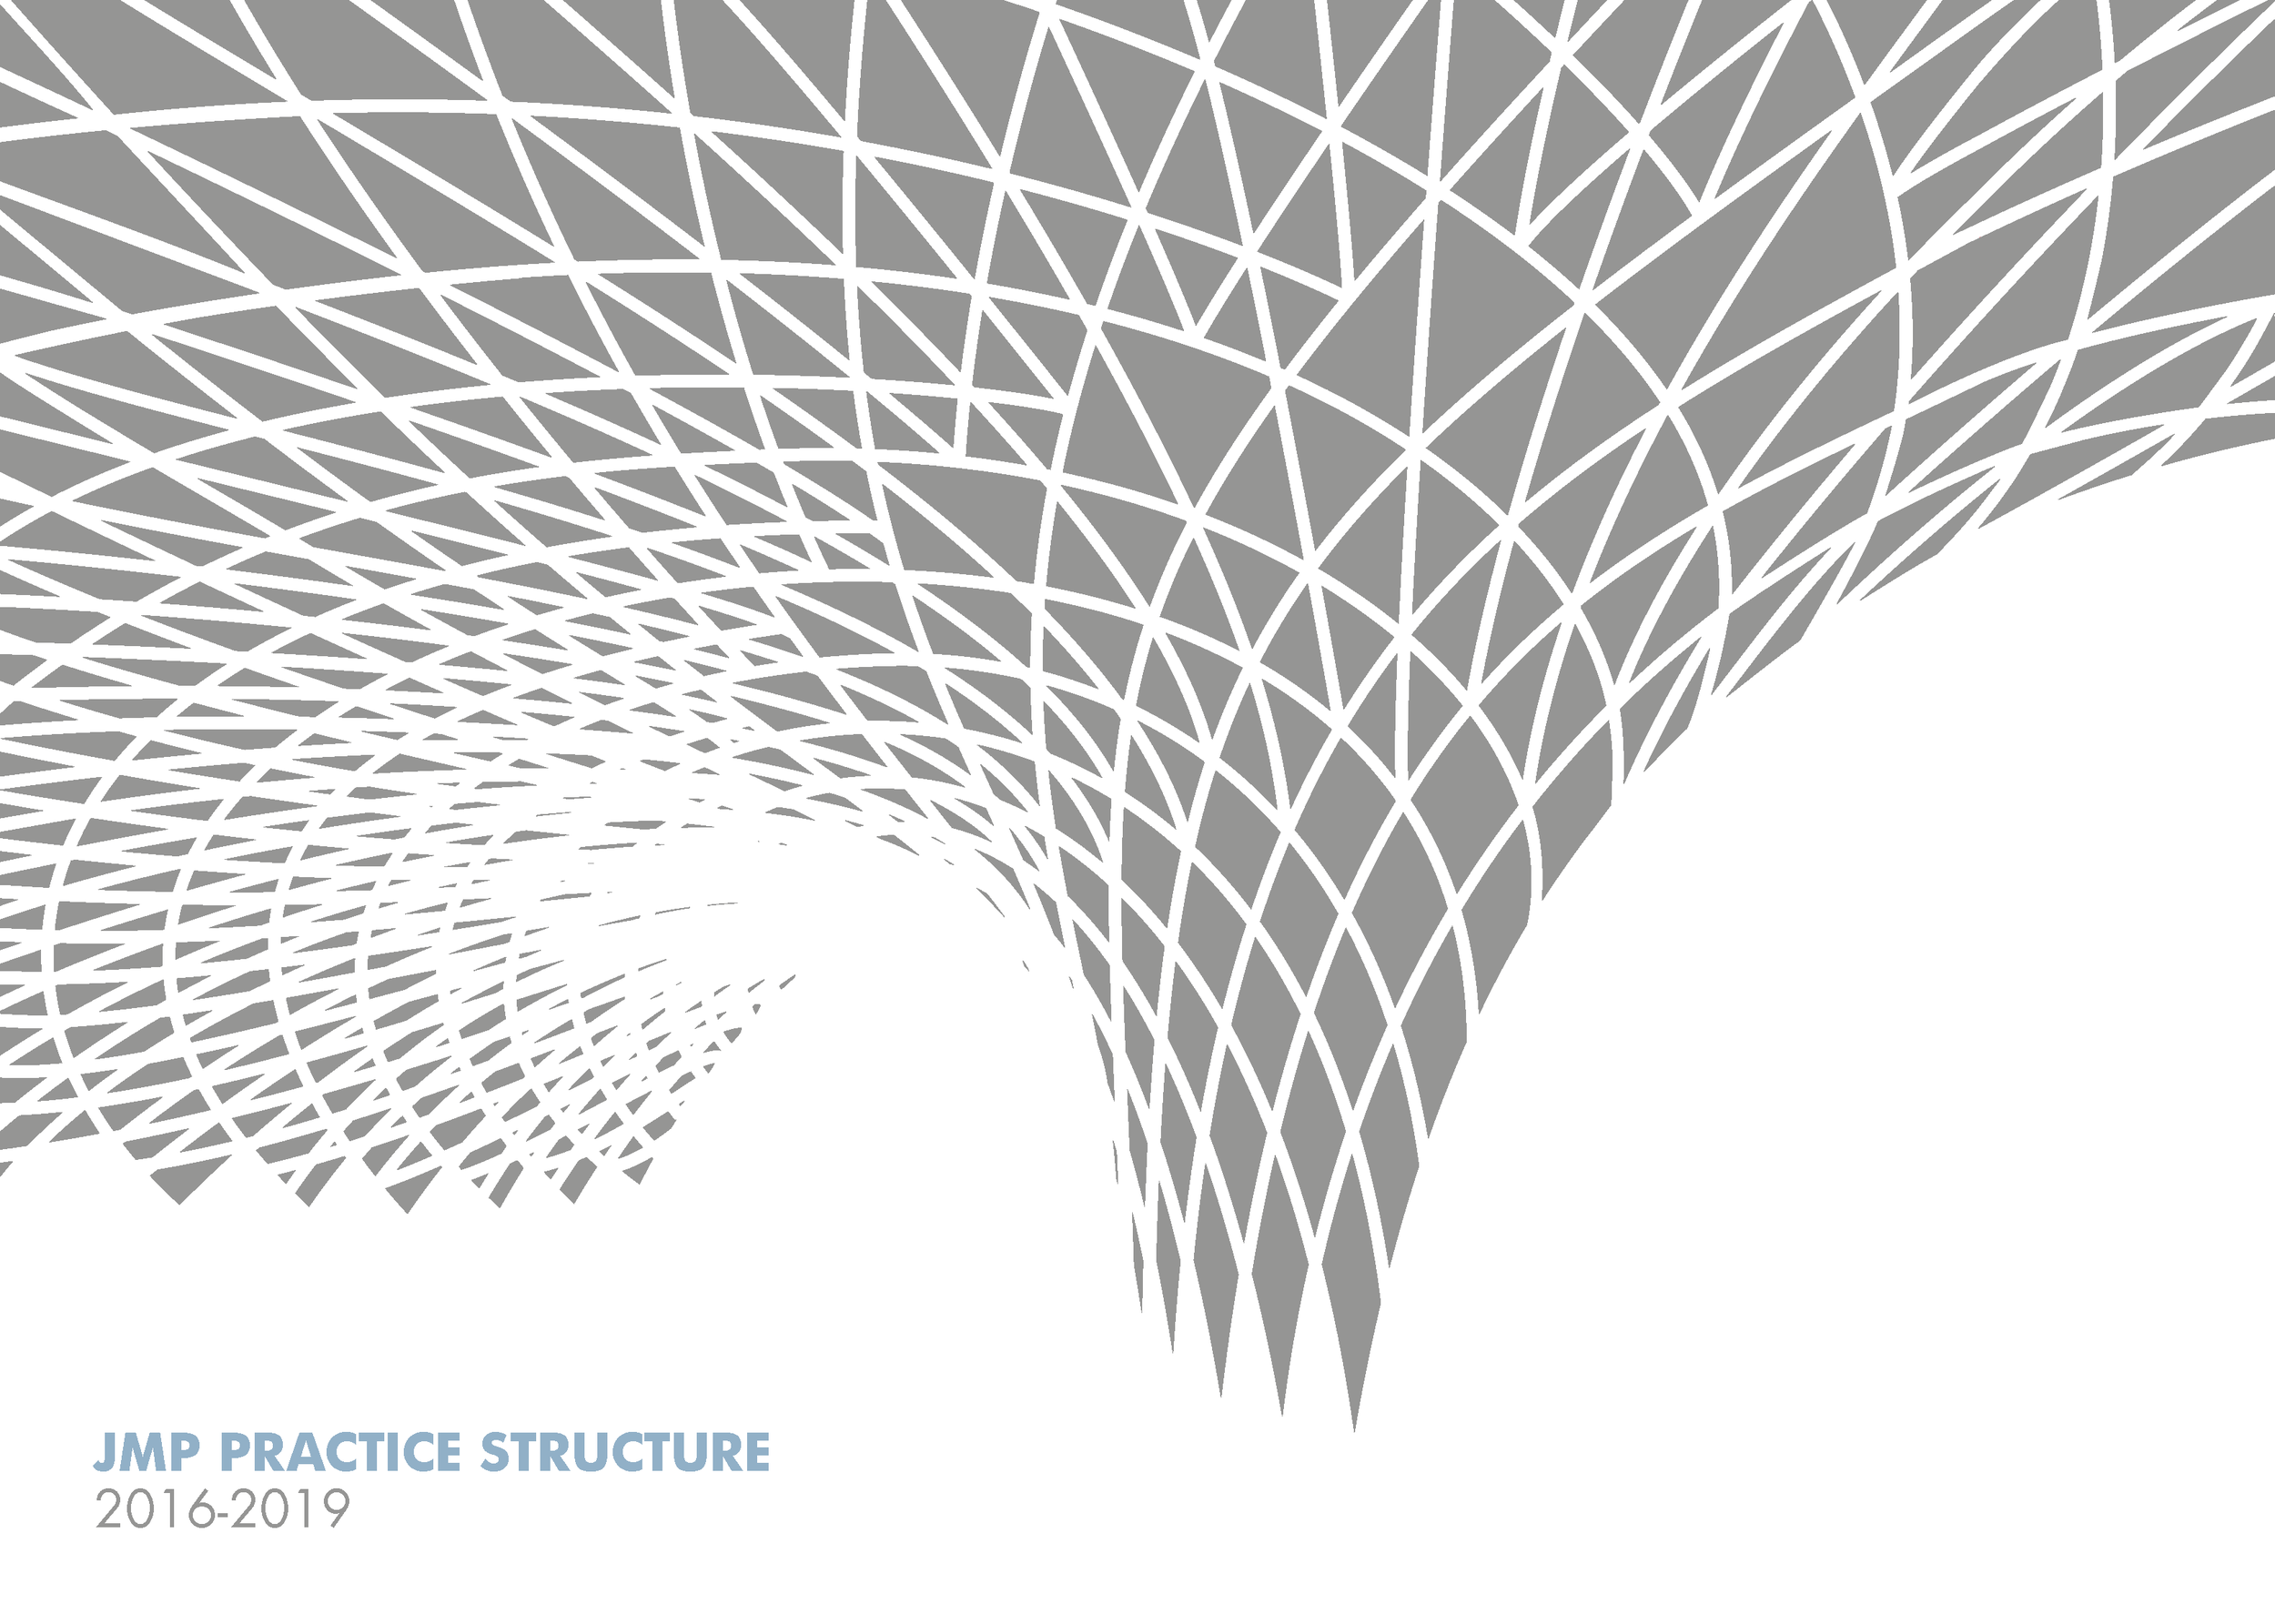 Kings Cross Illustration / Practice Structure Document